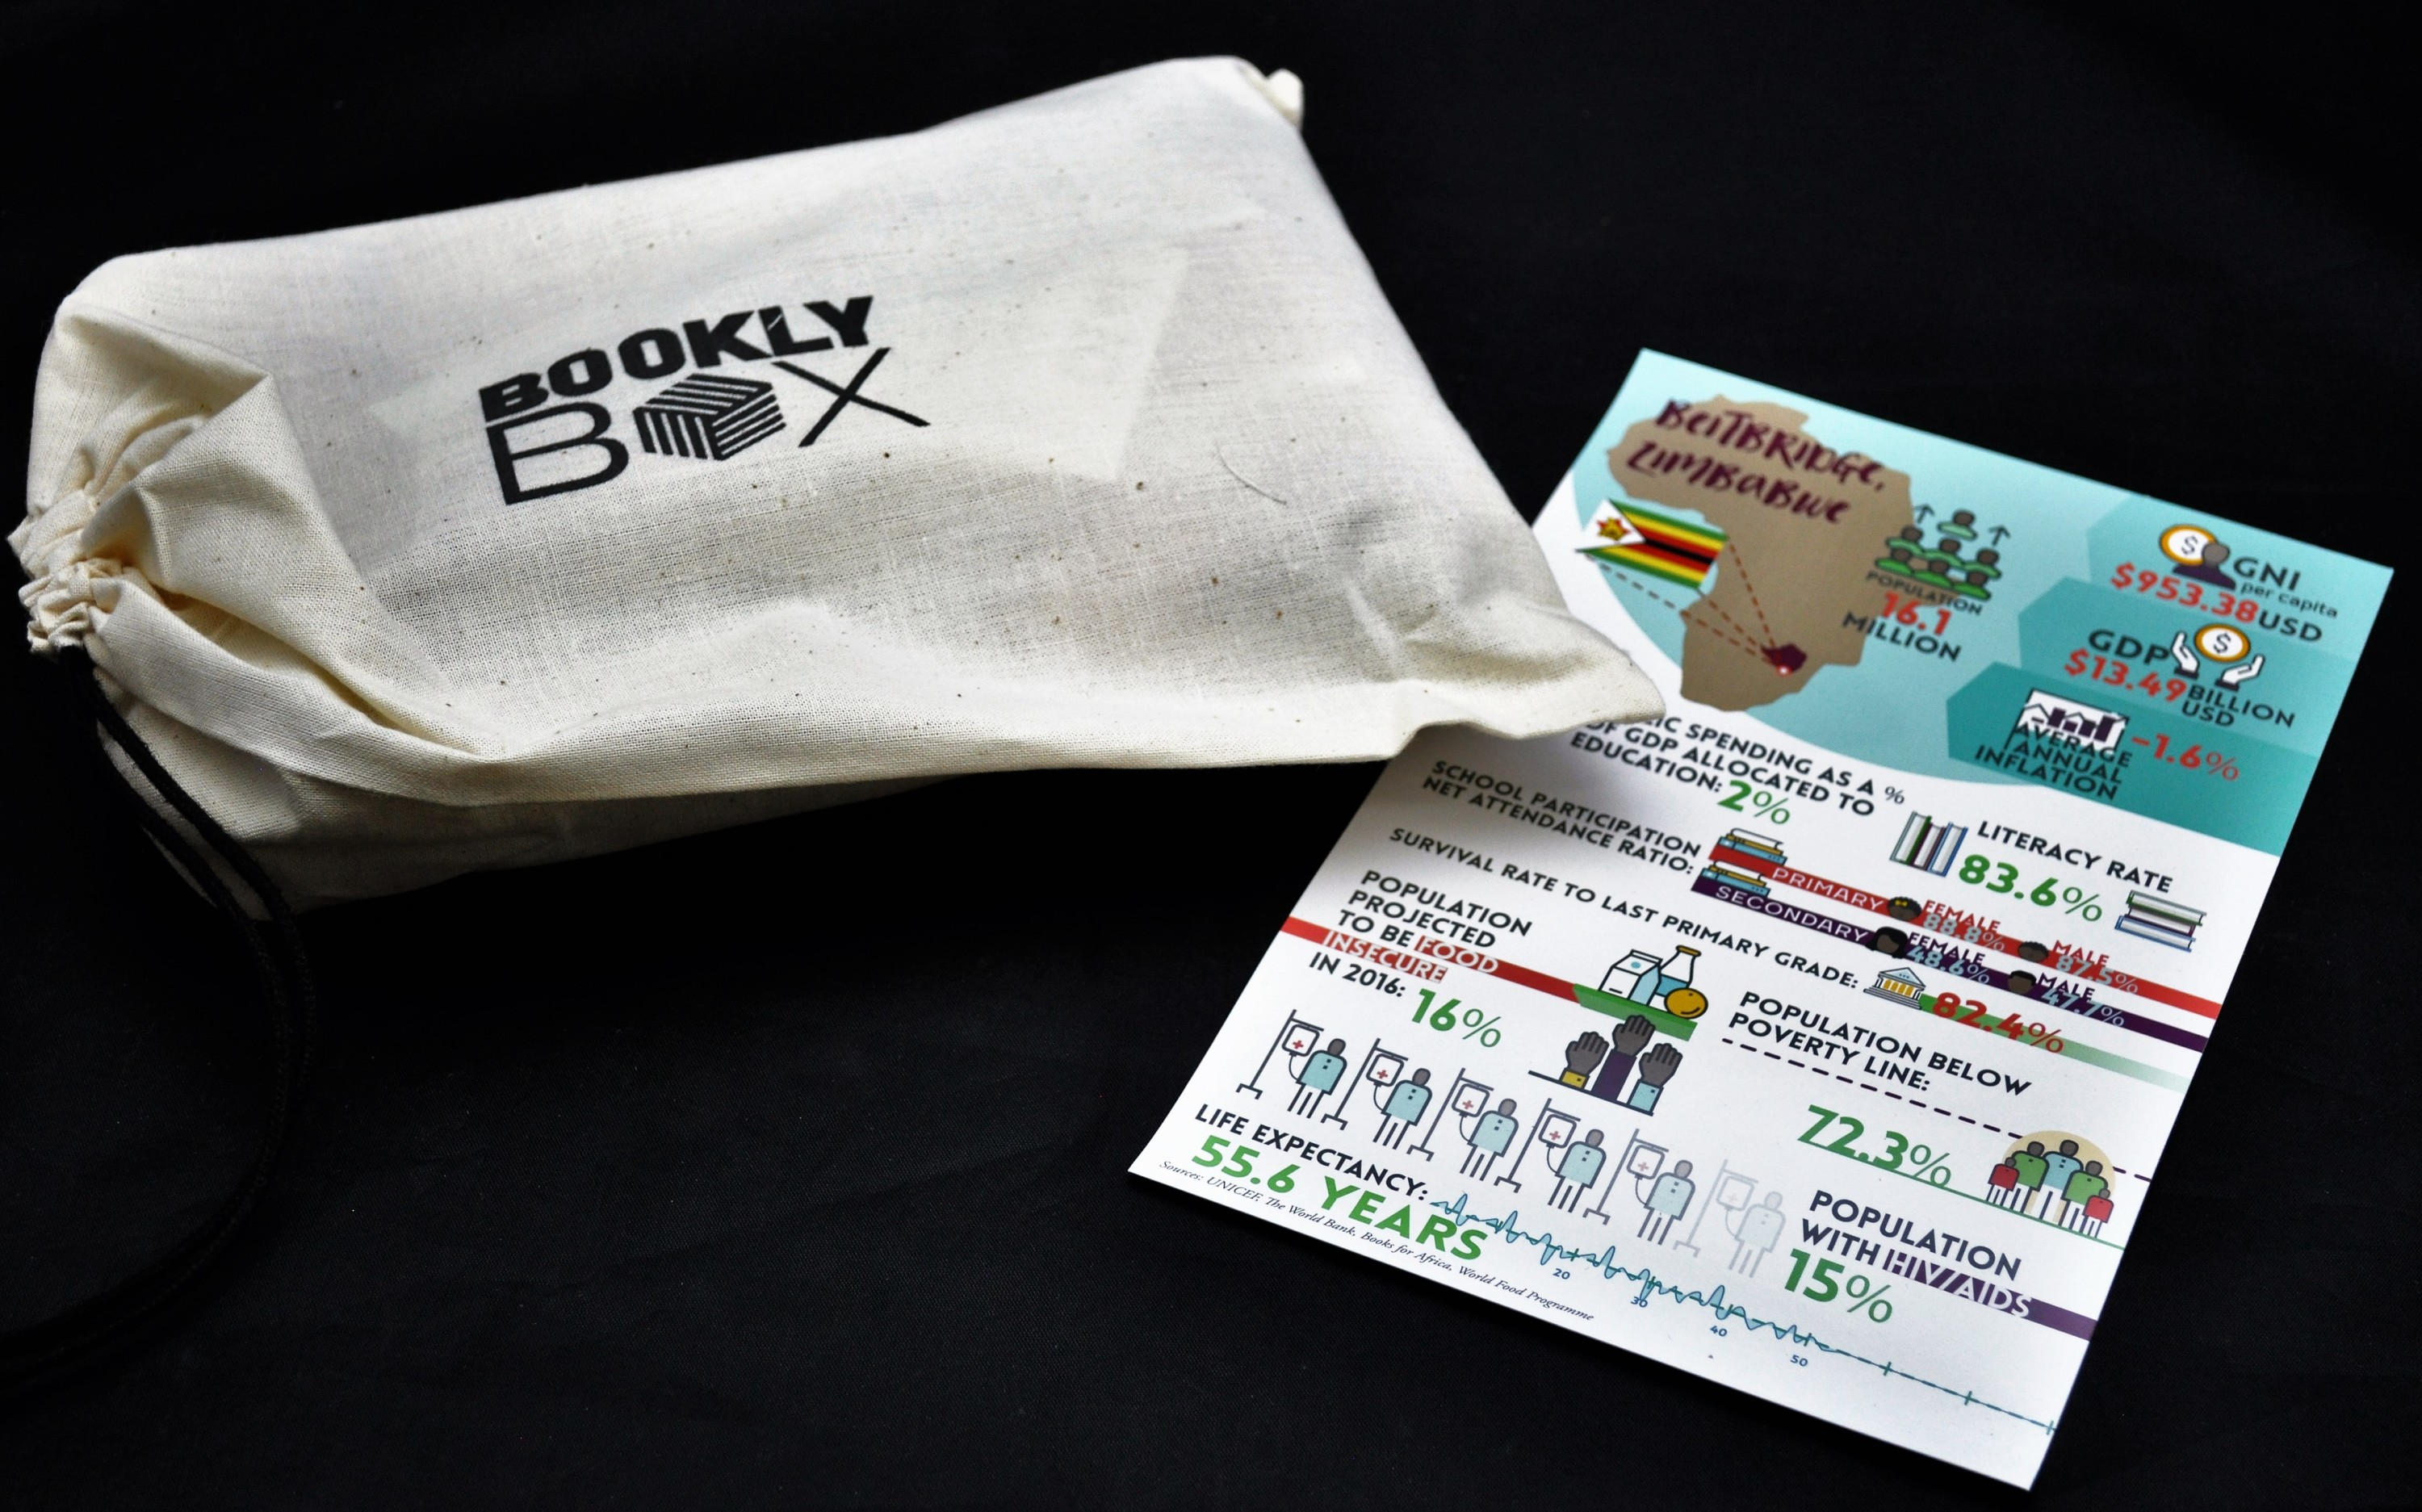 bookly-box-september-2016-bag